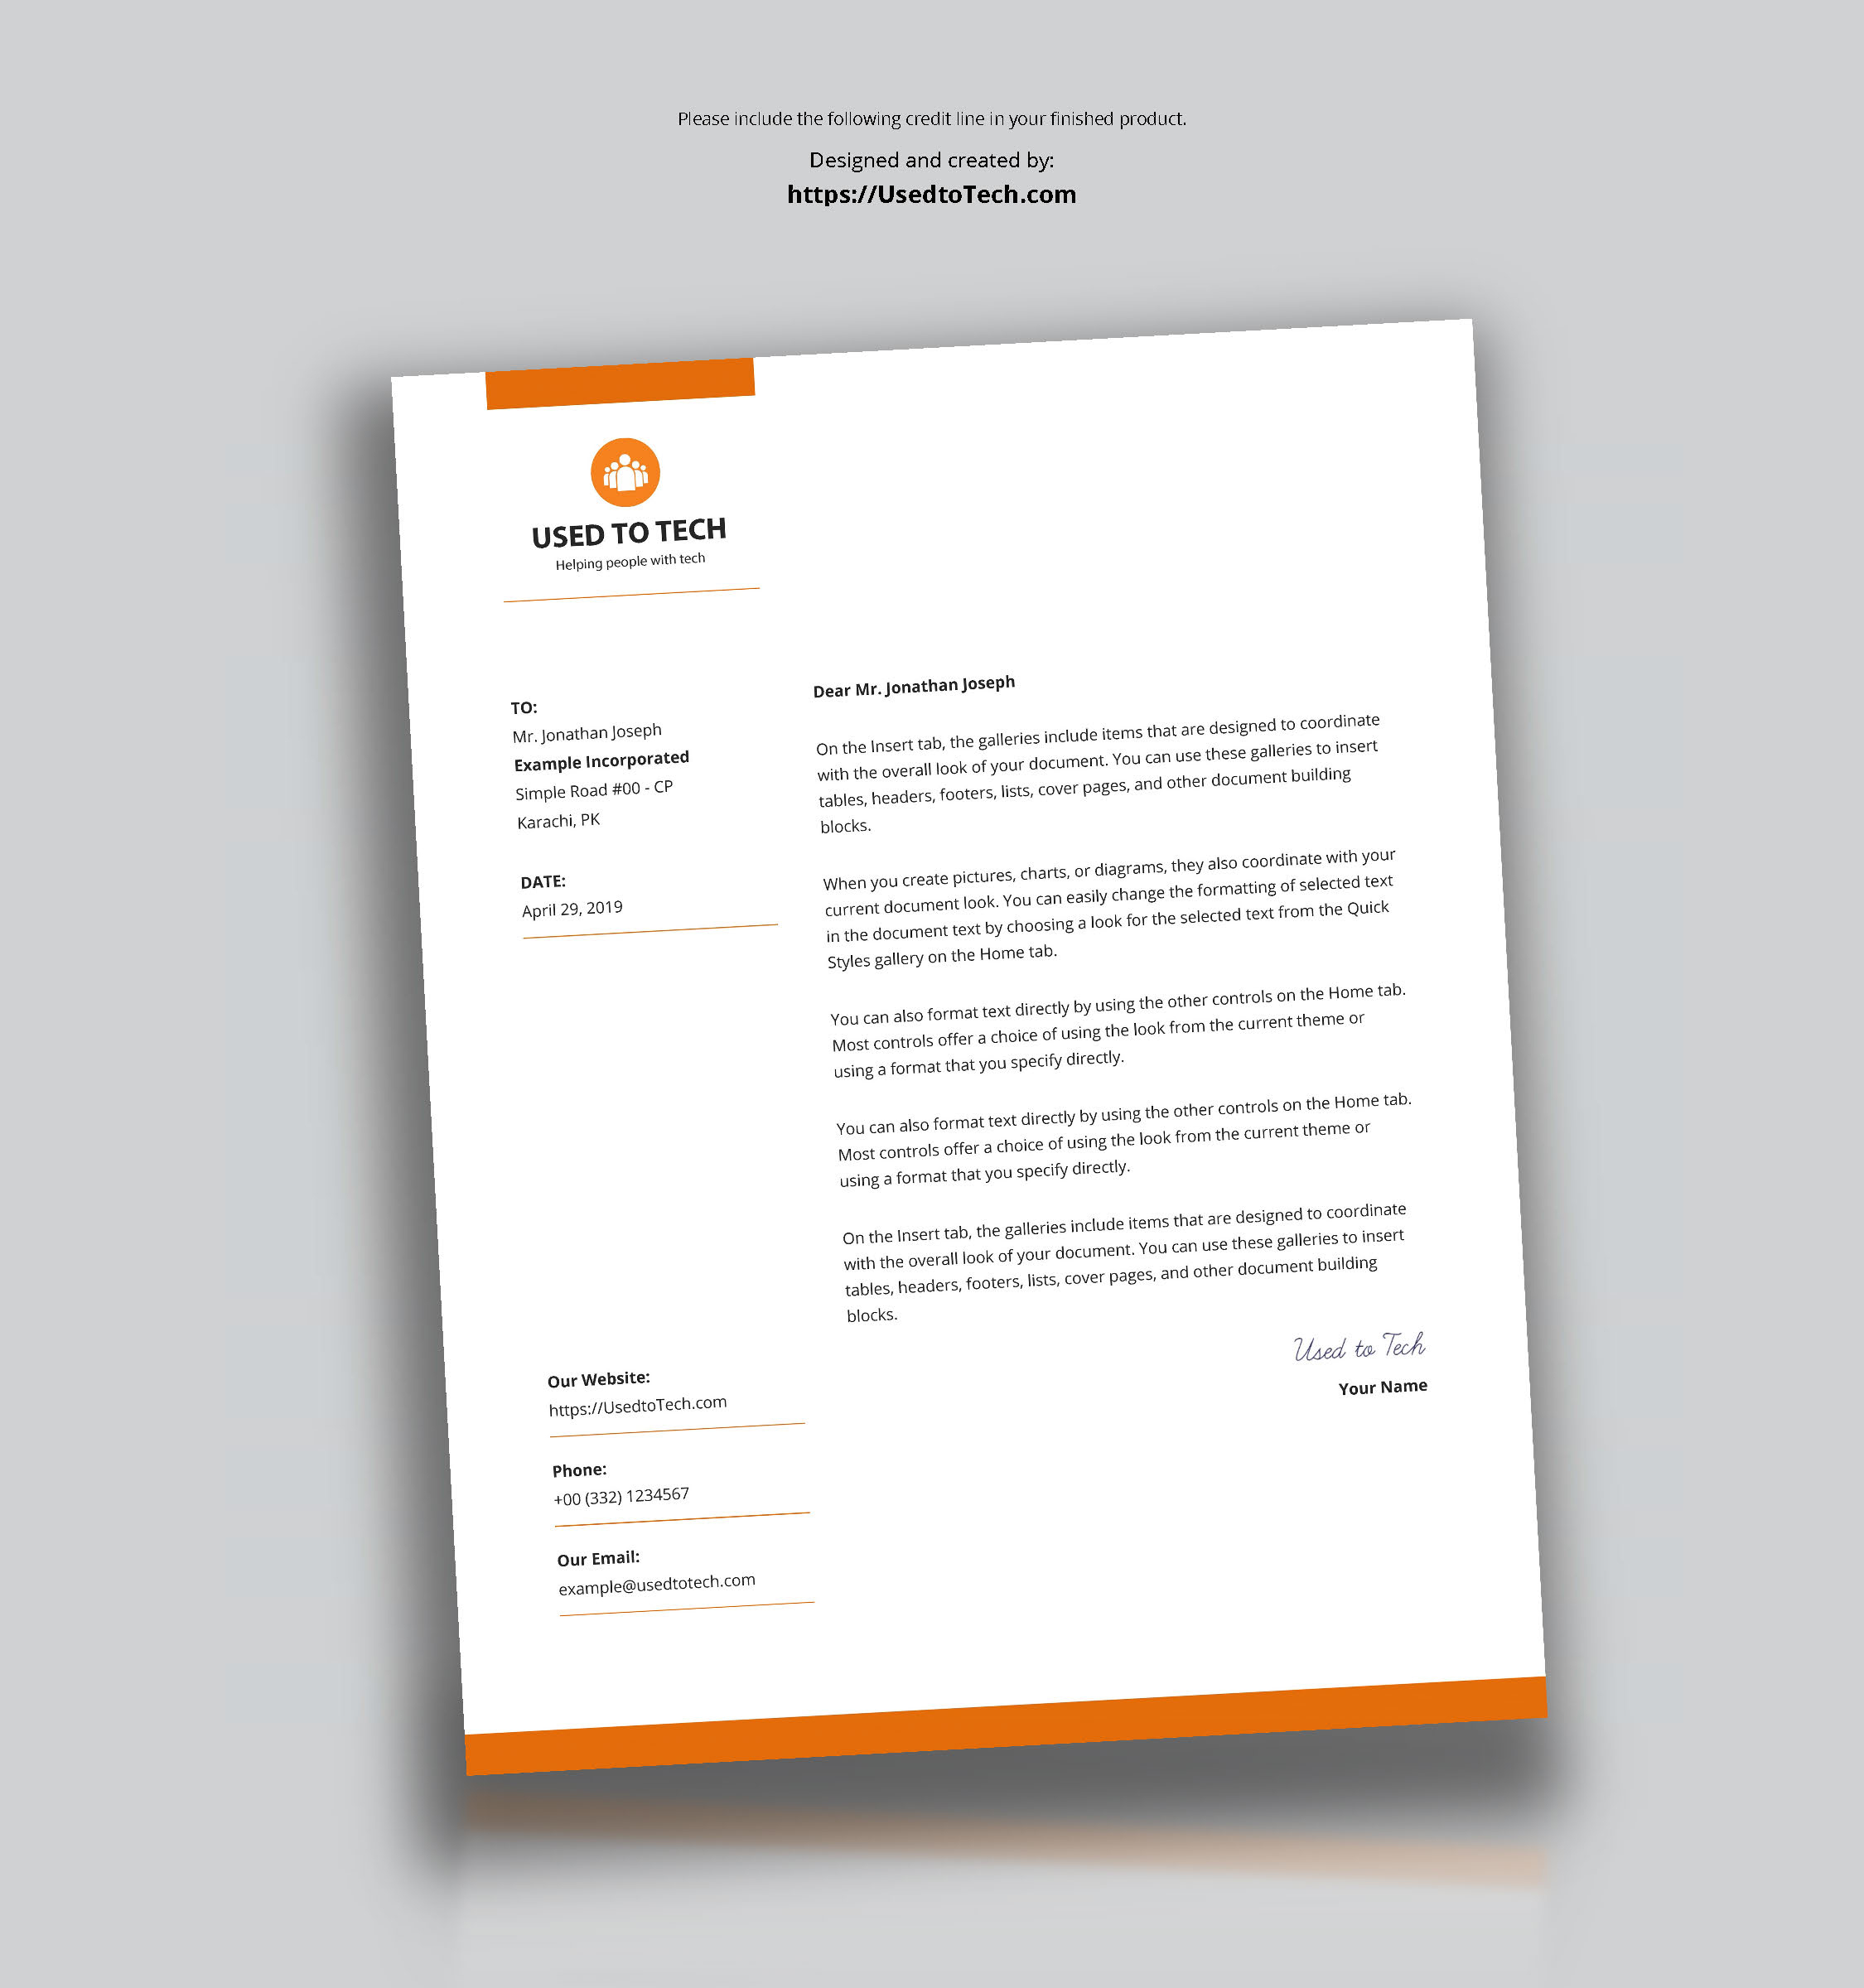 Modern Letterhead Template In Microsoft Word Free - Used To Tech Throughout Free Letterhead Templates For Microsoft Word